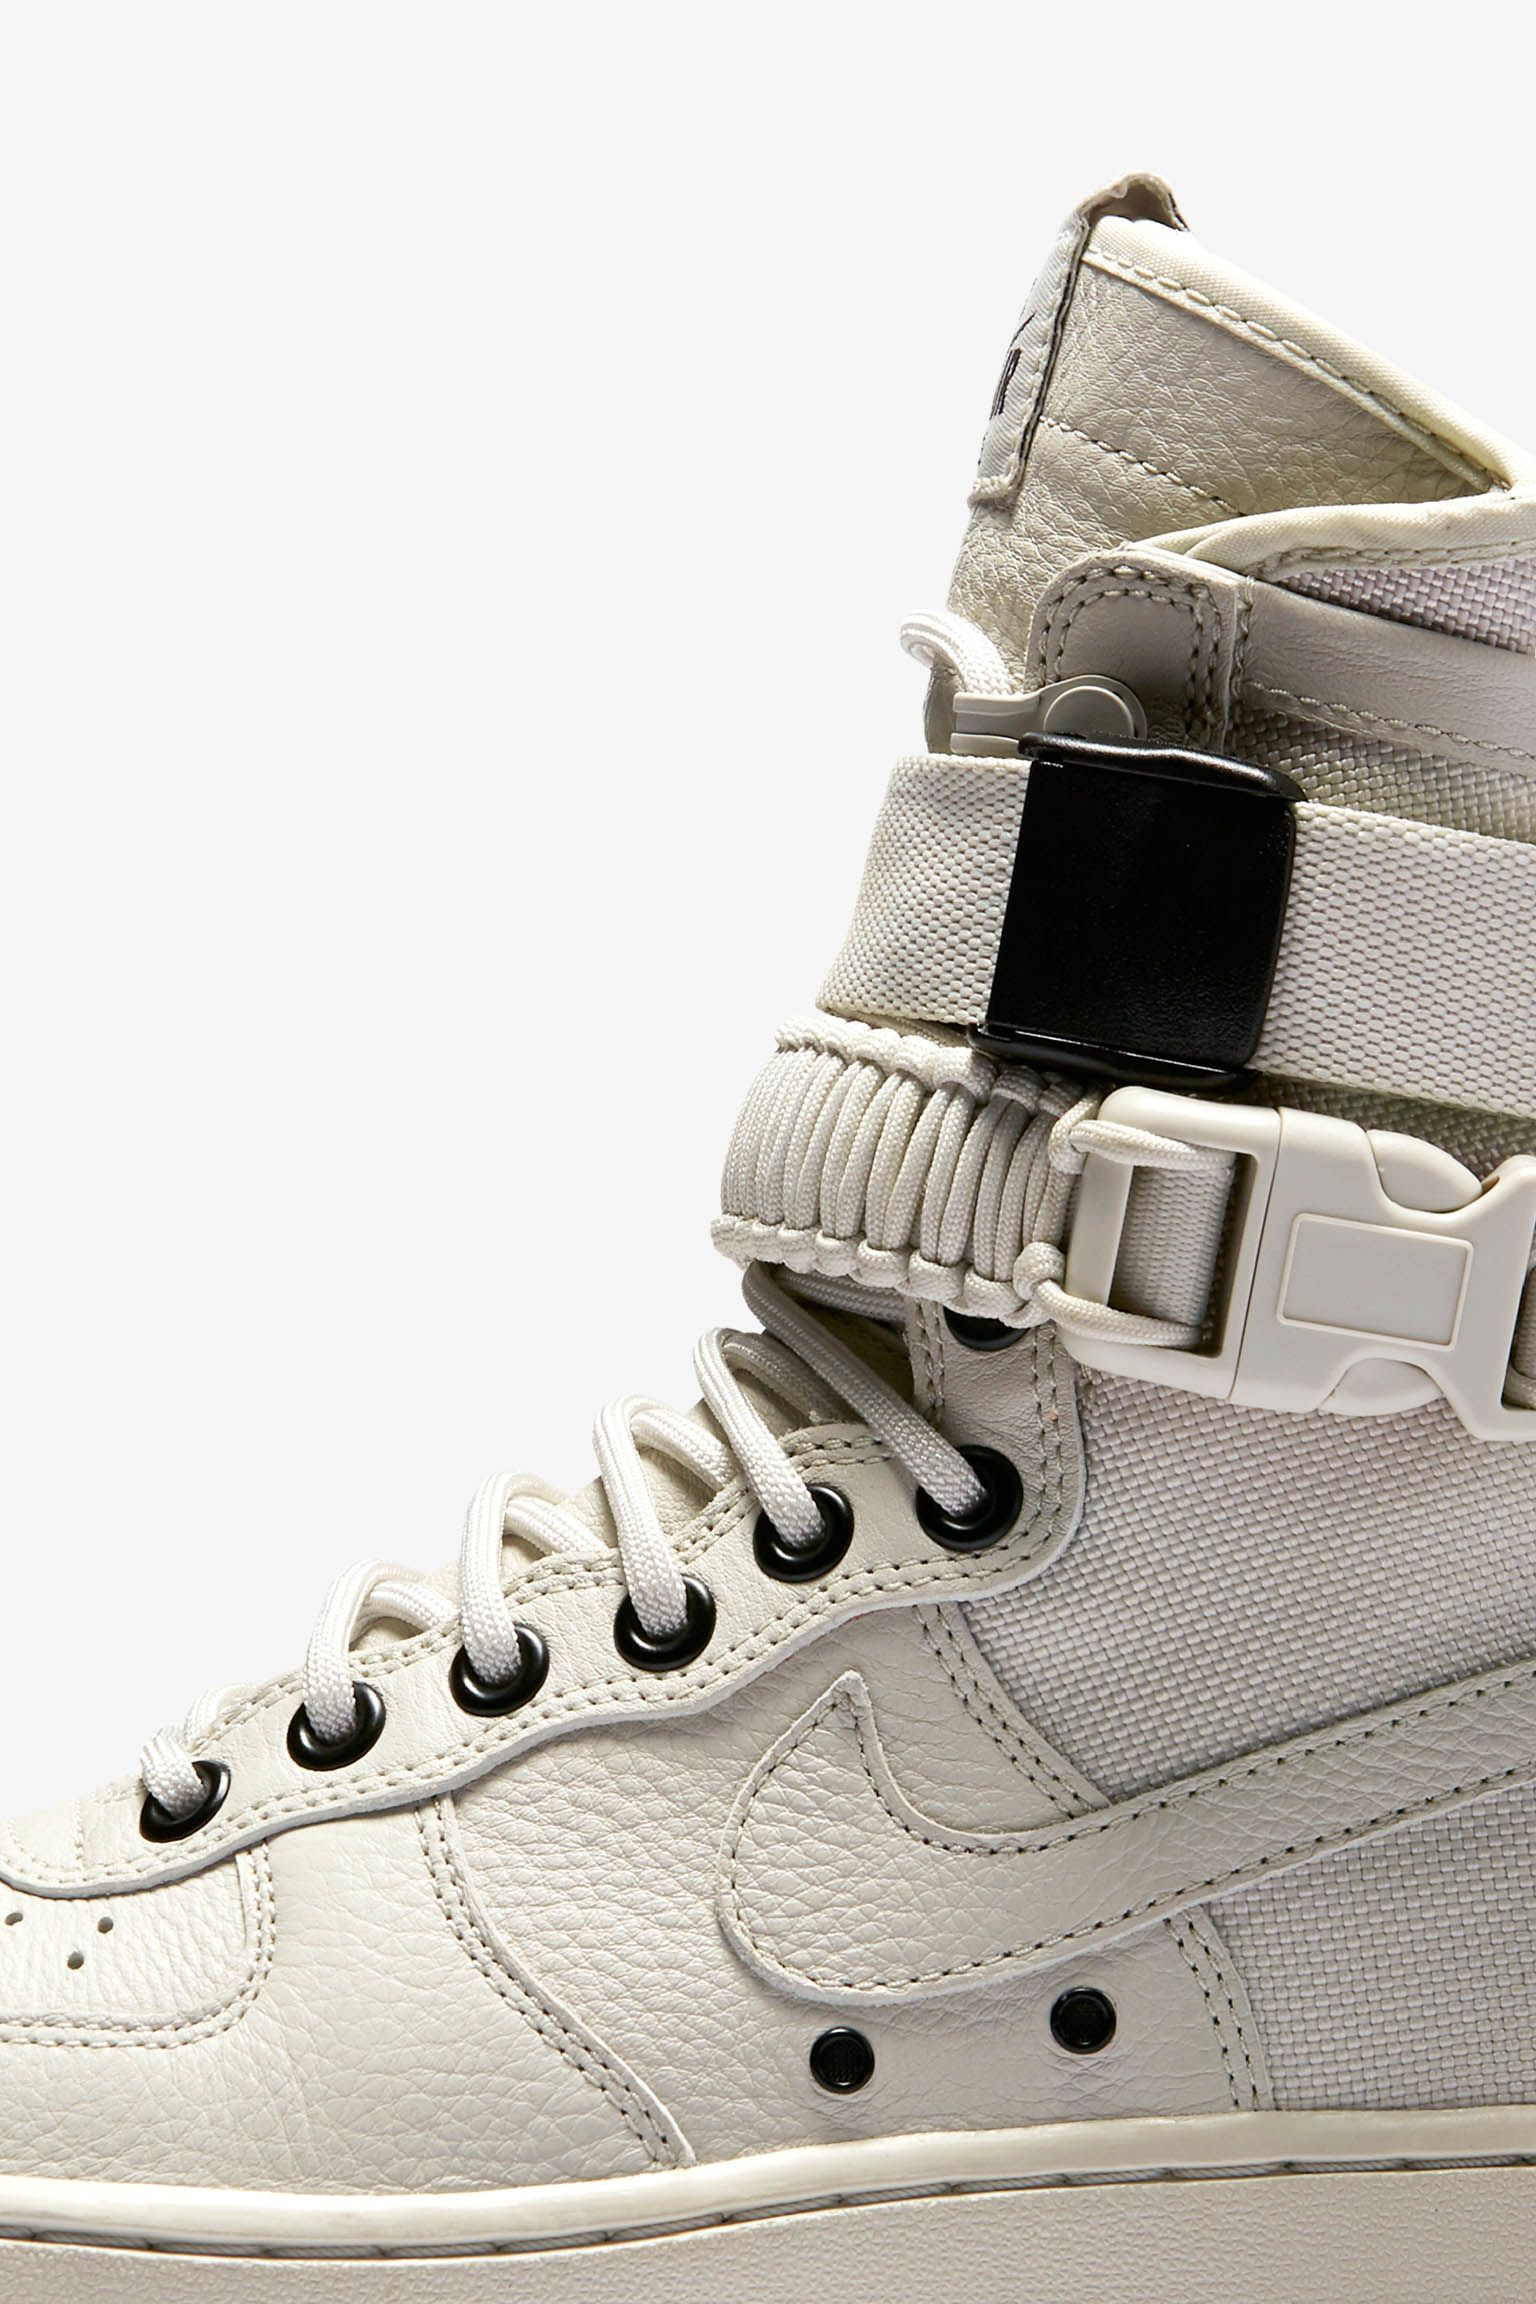 Nike Special Field Air Force 1 « Light Bone & Sail » pour Femme. Date de sortie